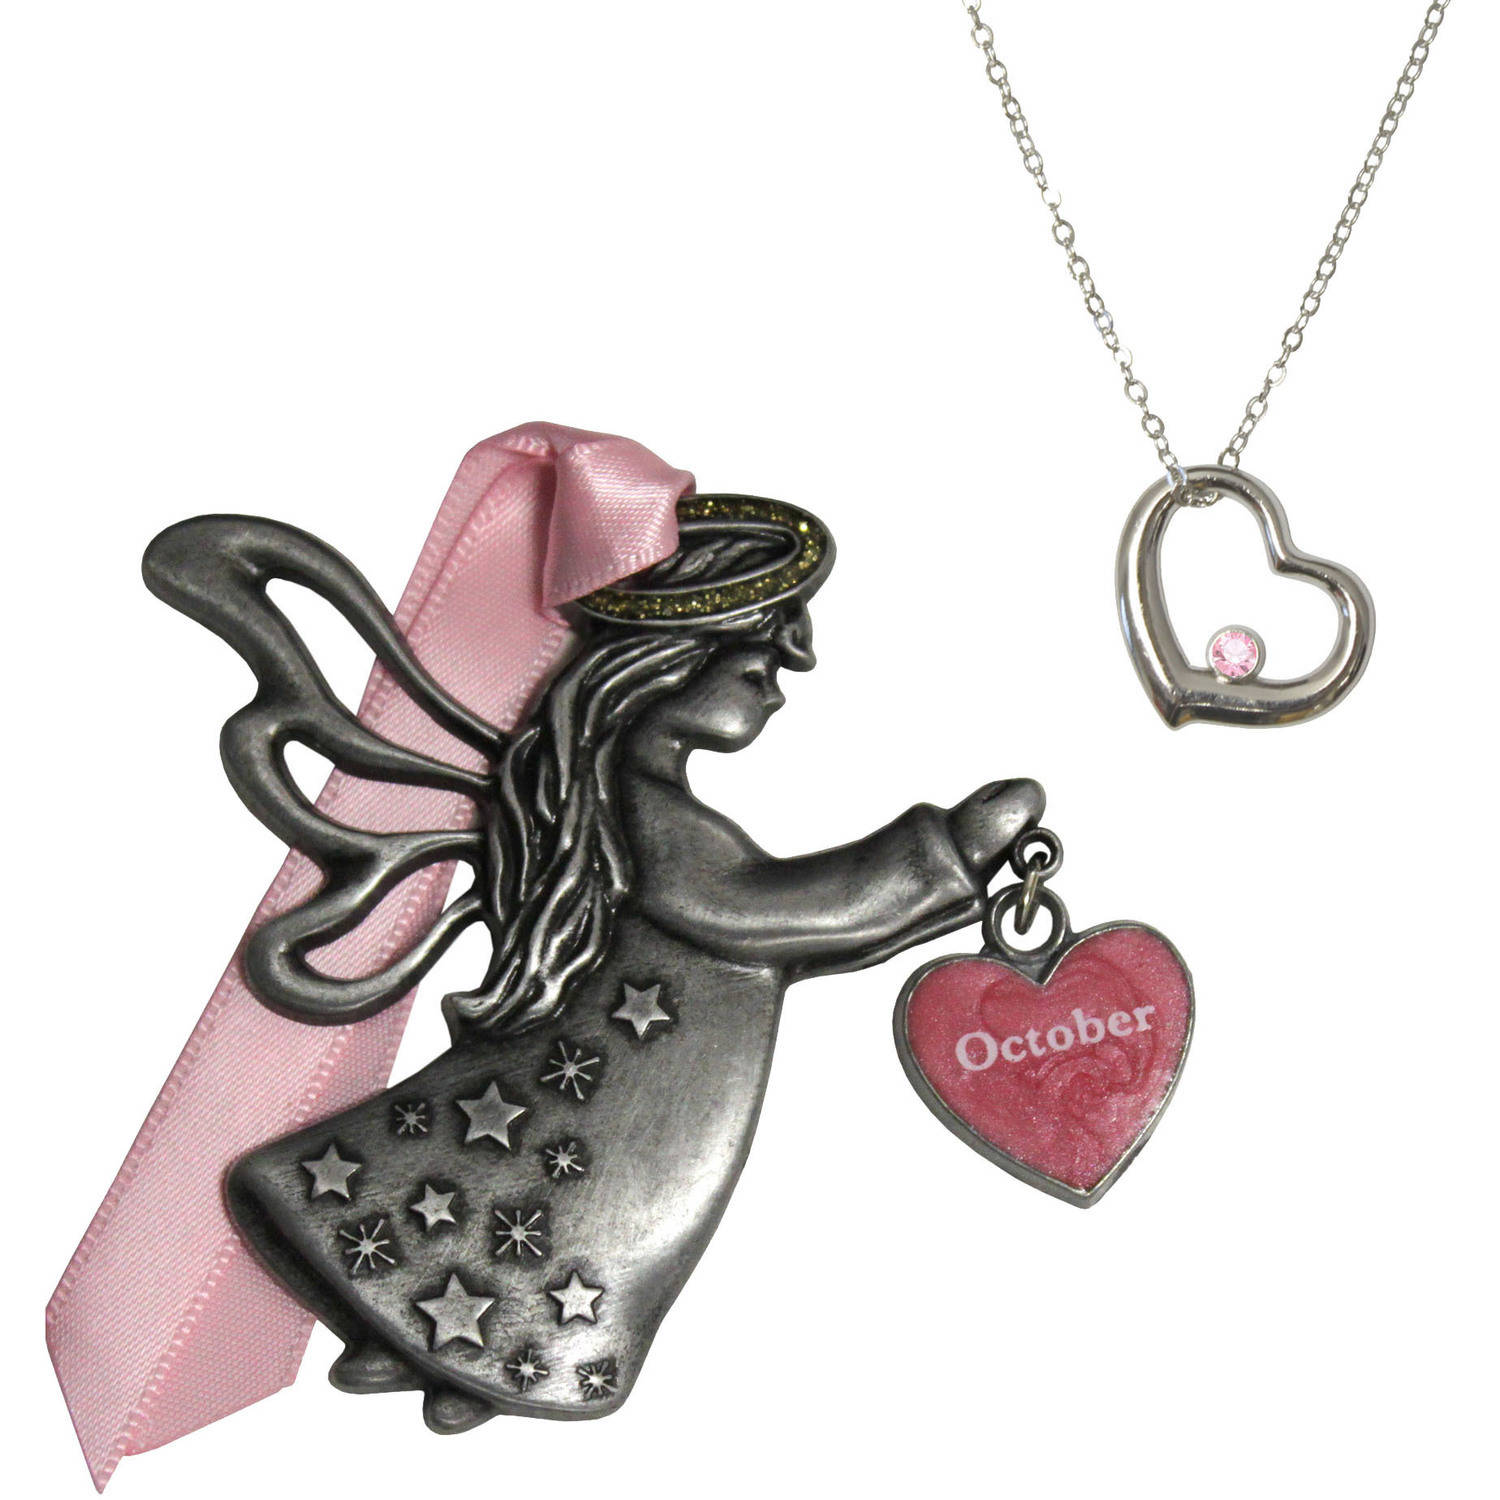 Gloria Duchin October Birthstone Angel Ornament and Necklace Set